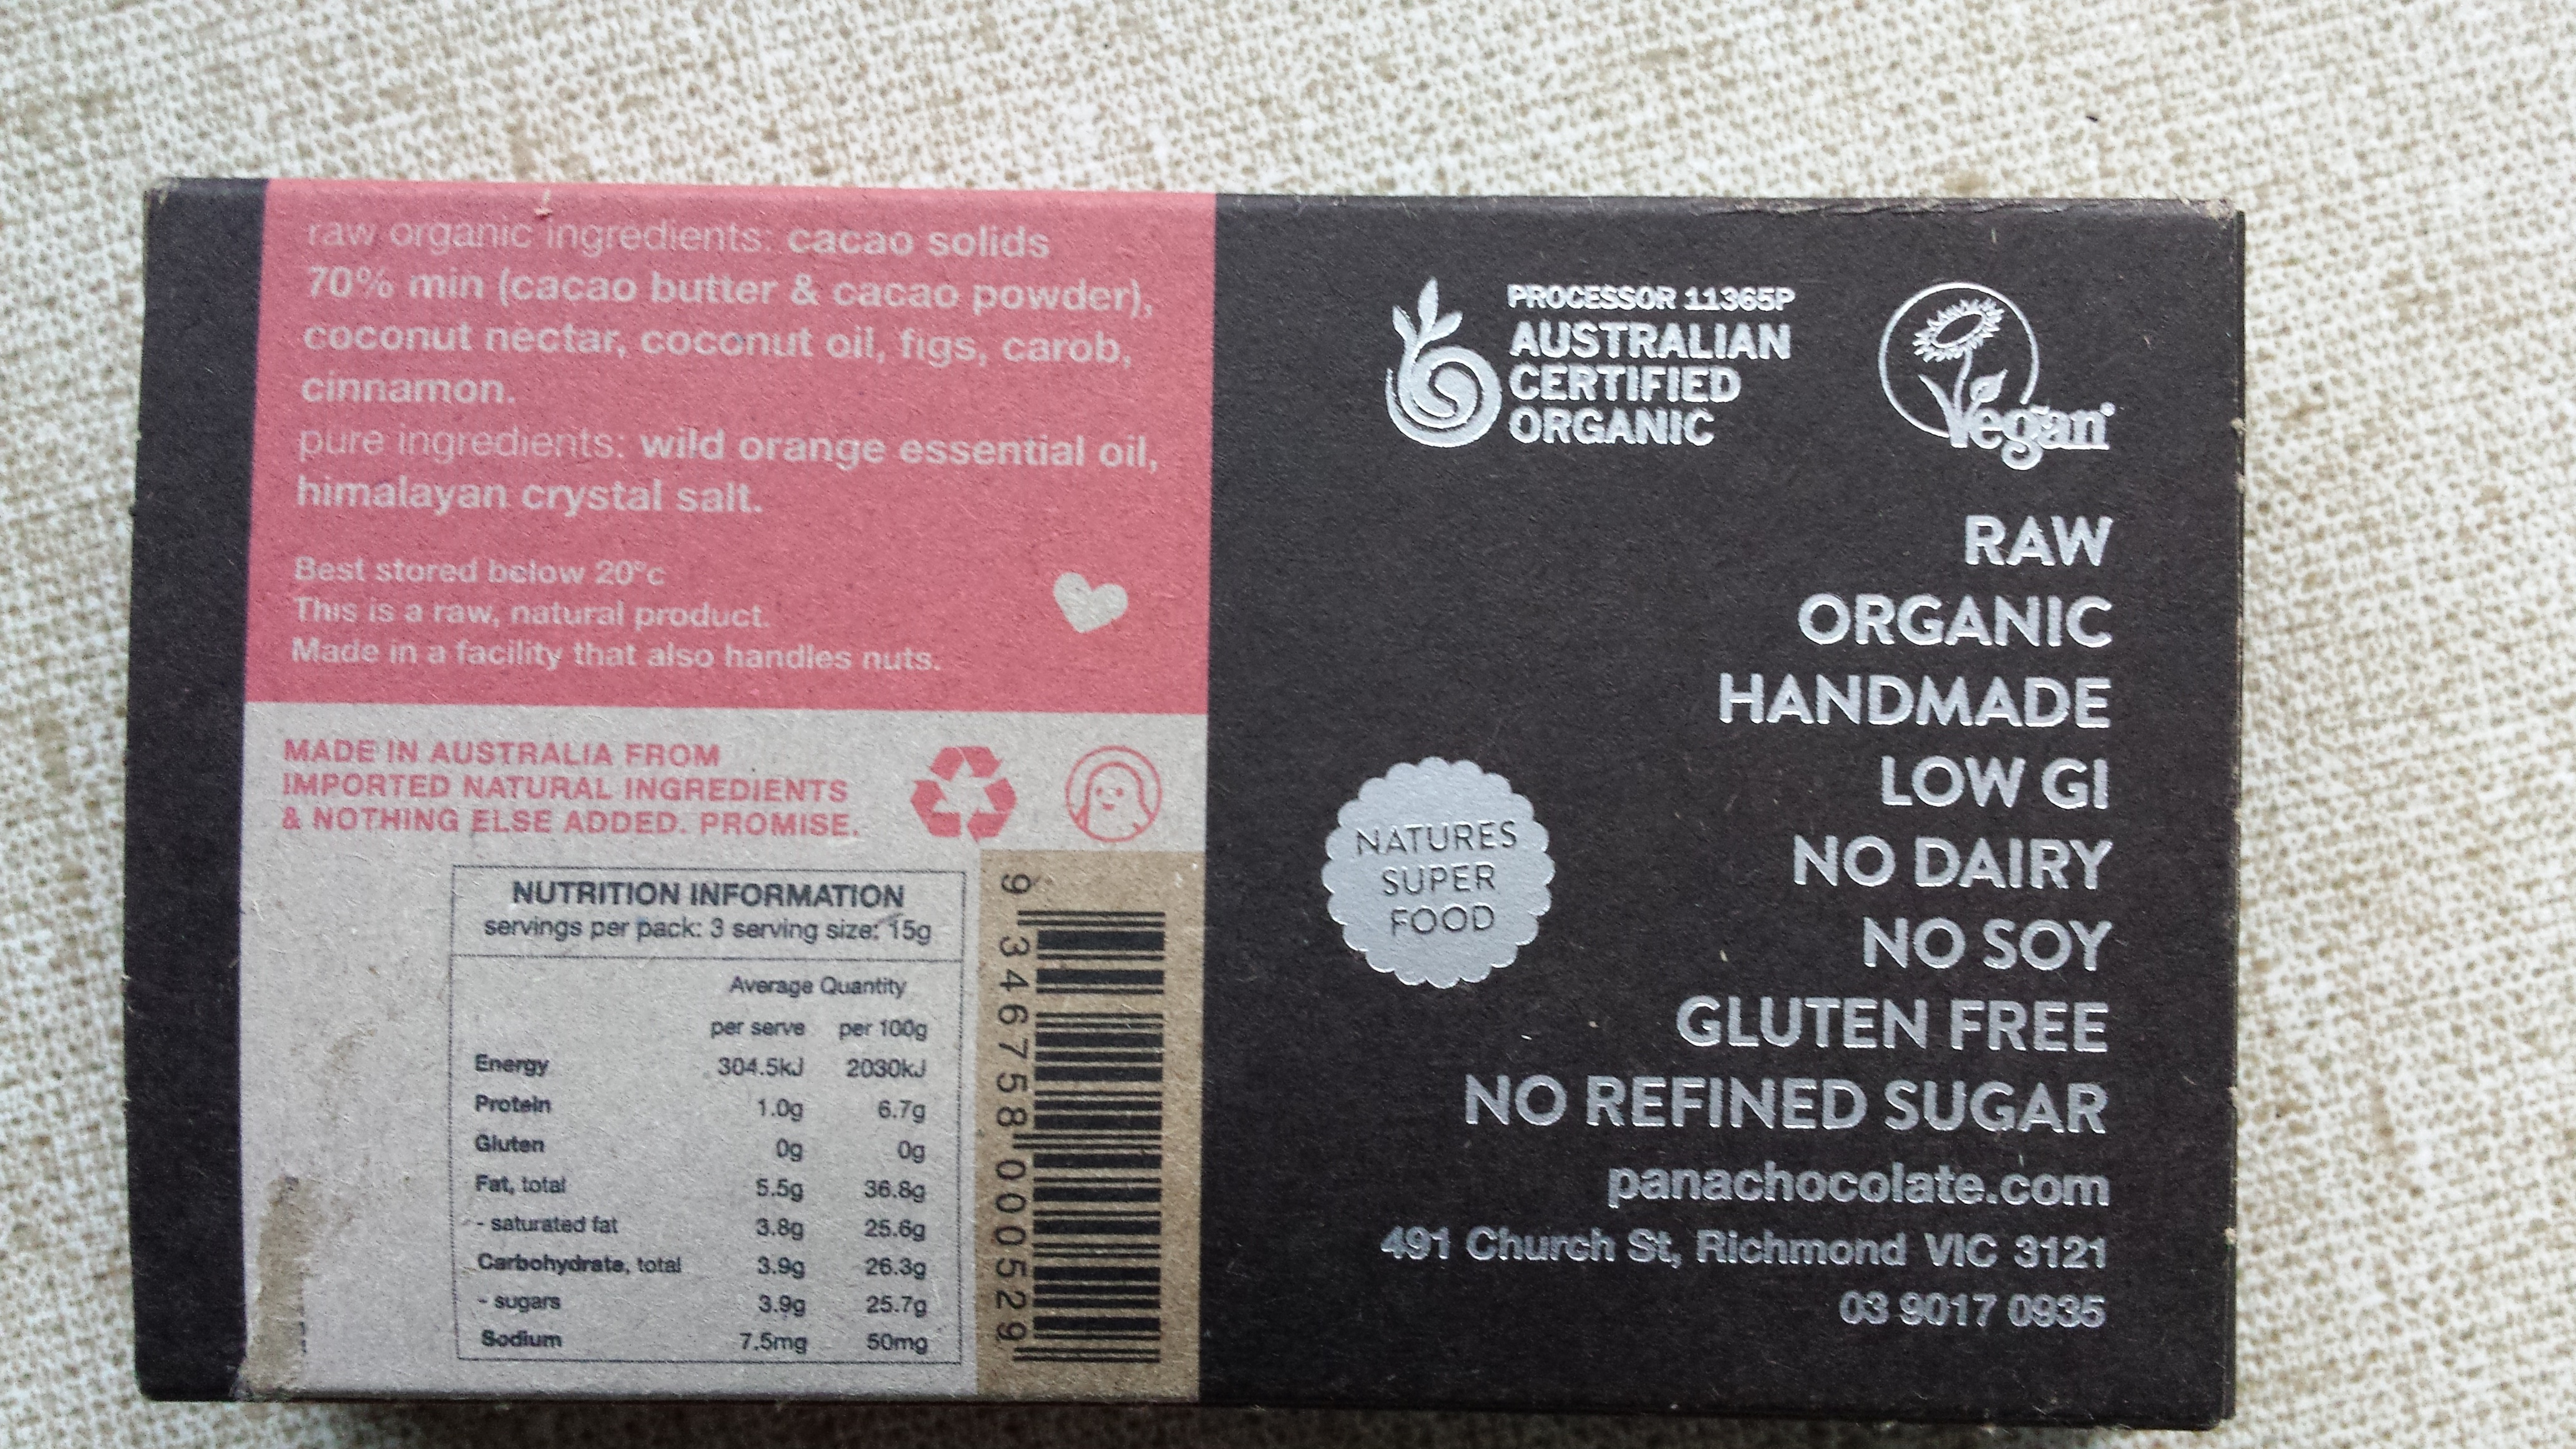 pana chocolate health and nutrition claims on  the packaging